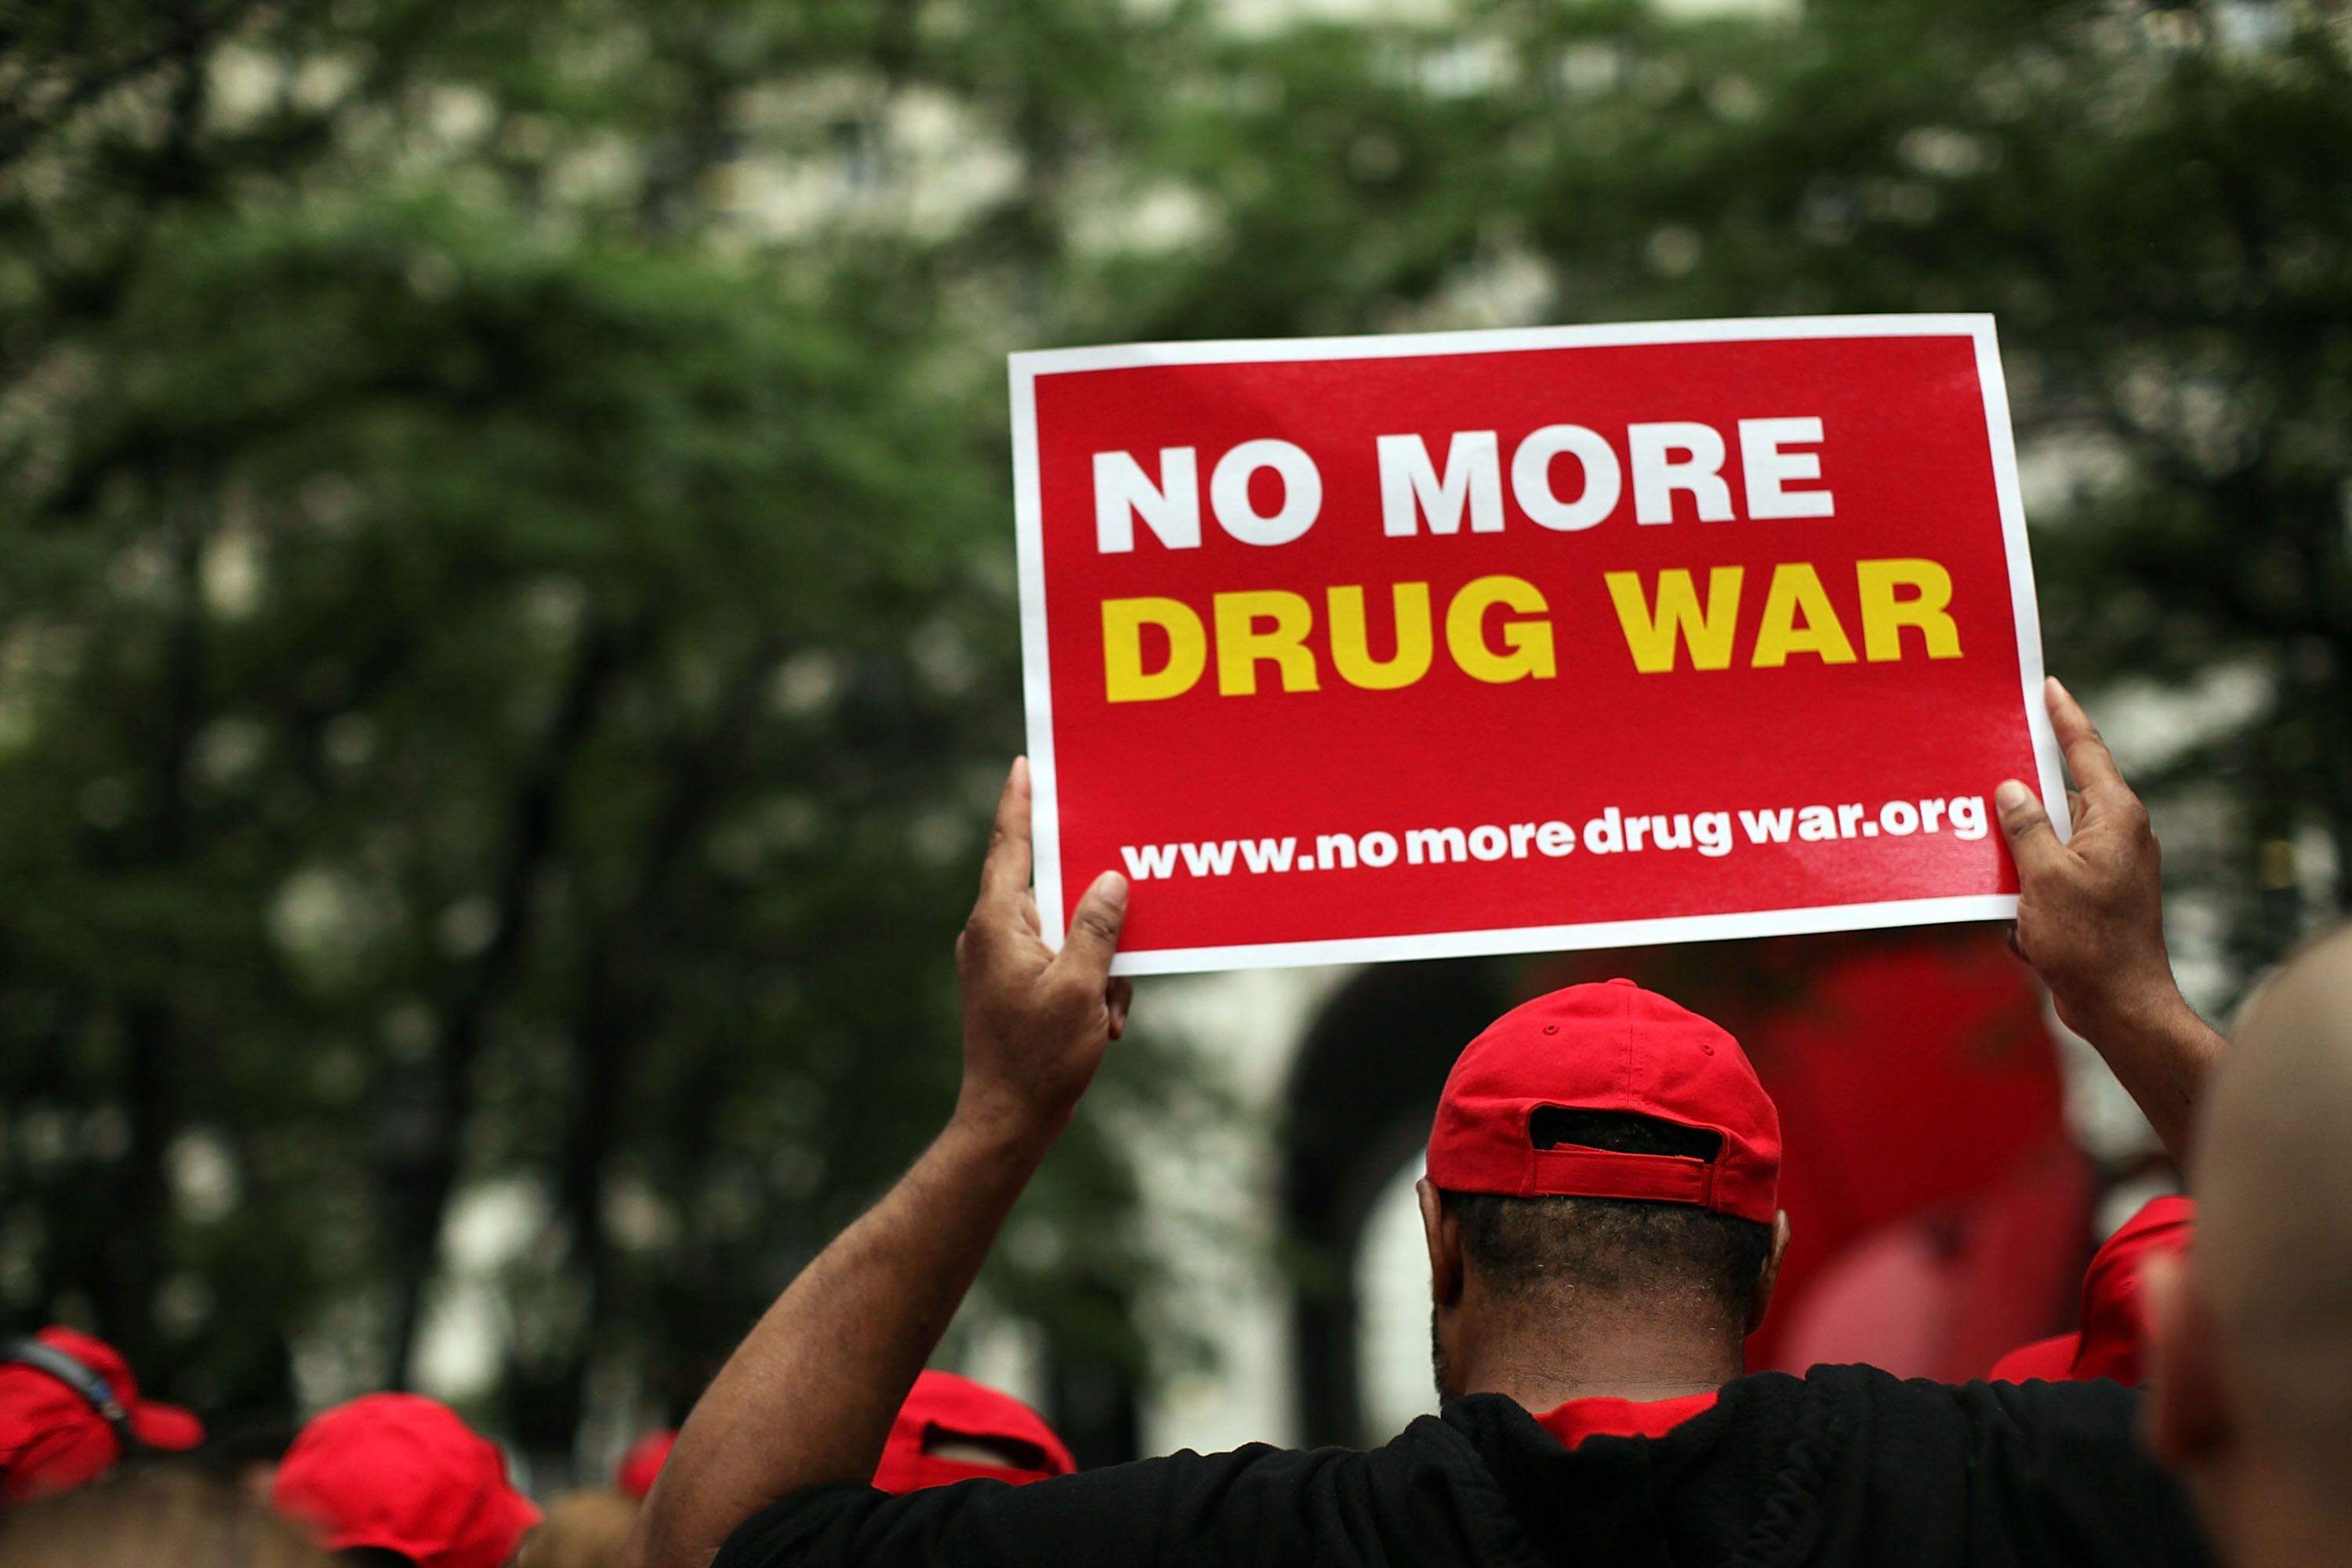 the war on drugs and the benefits and issues of the legalization of drugs The war on drugs is a campaign, led by the us federal government, of drug prohibition, military aid, and military intervention, with the stated aim being to reduce the illegal drug trade in the united states.